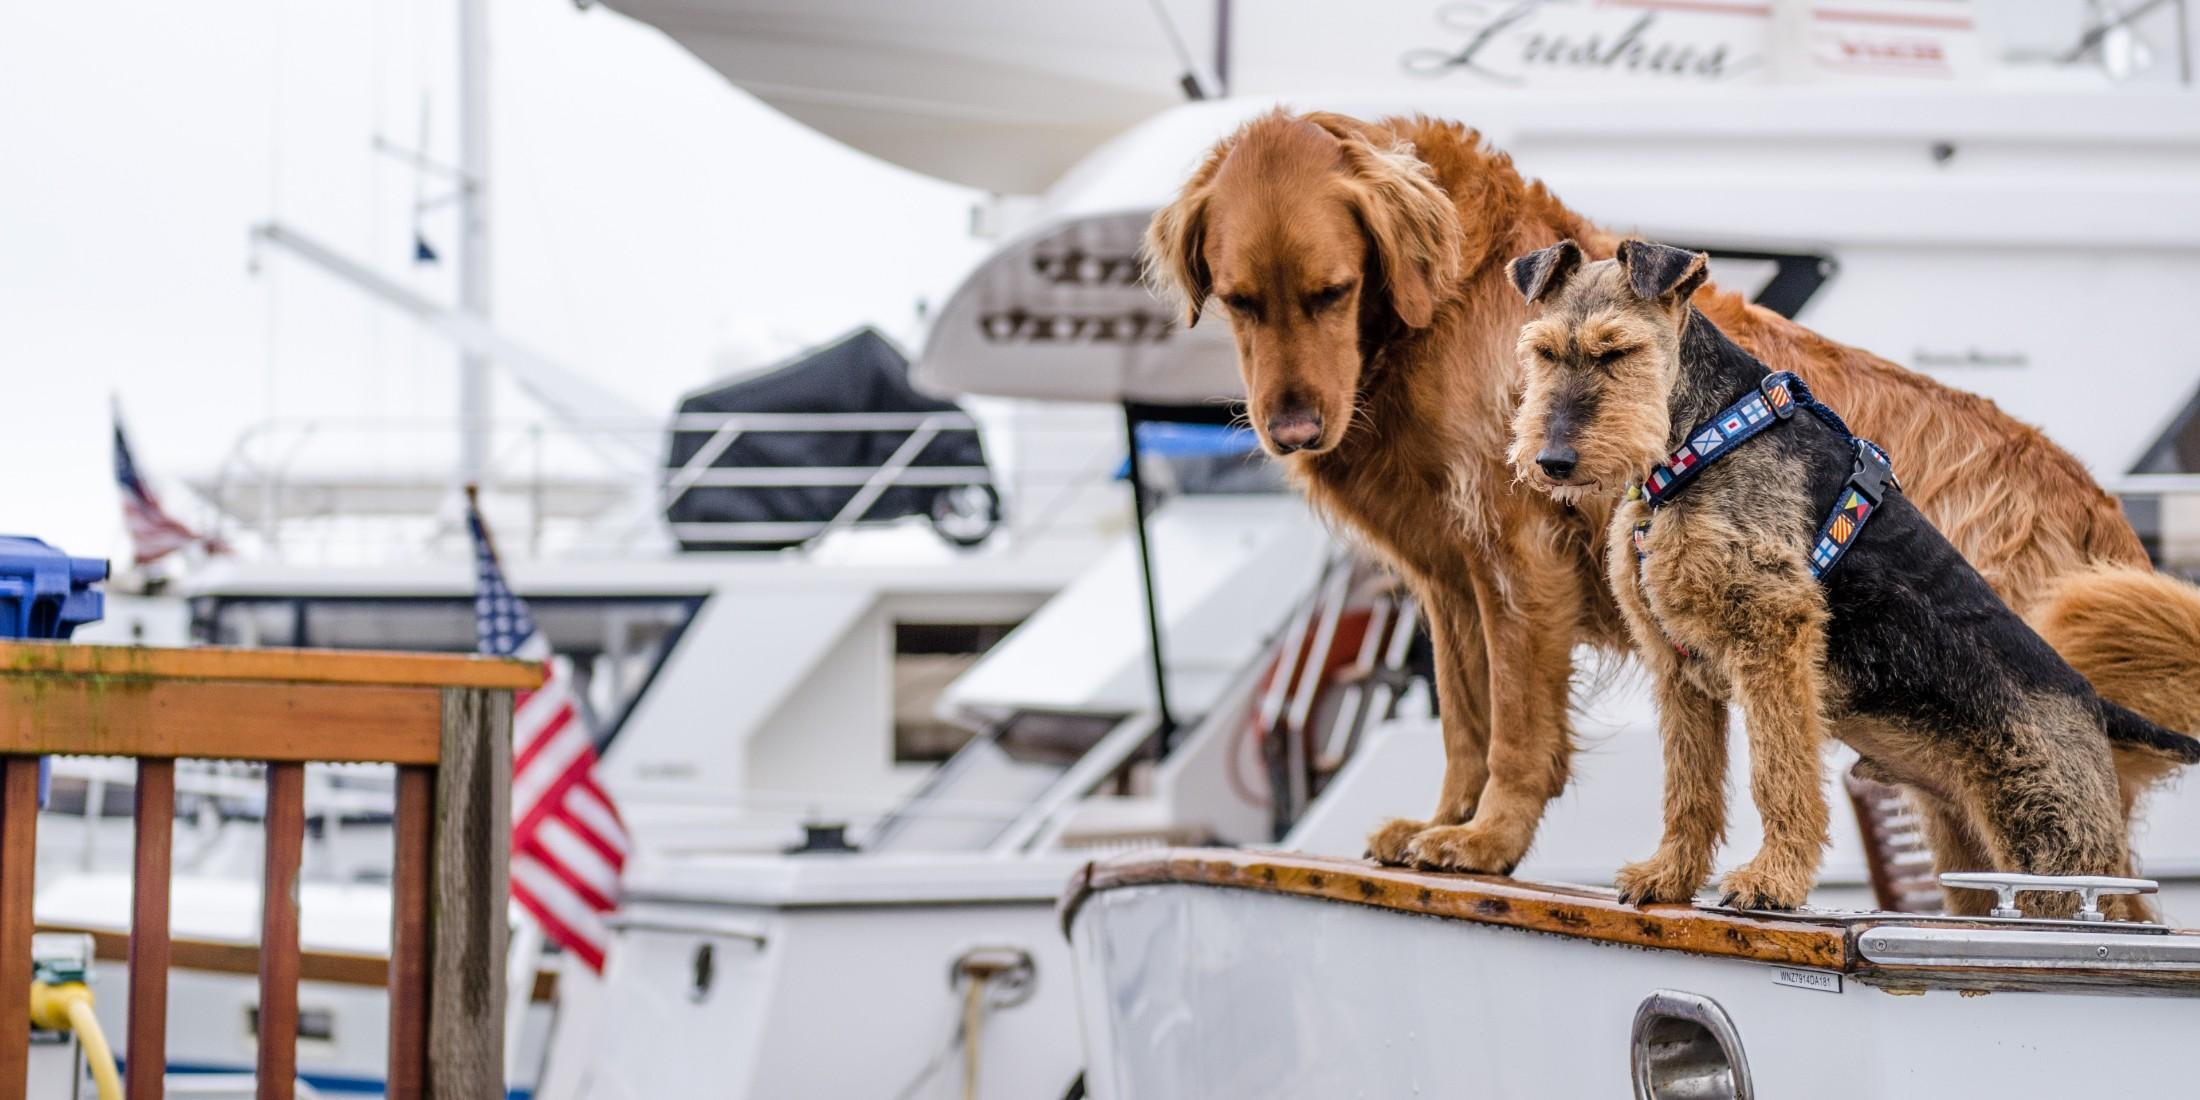 Sailing with your dog